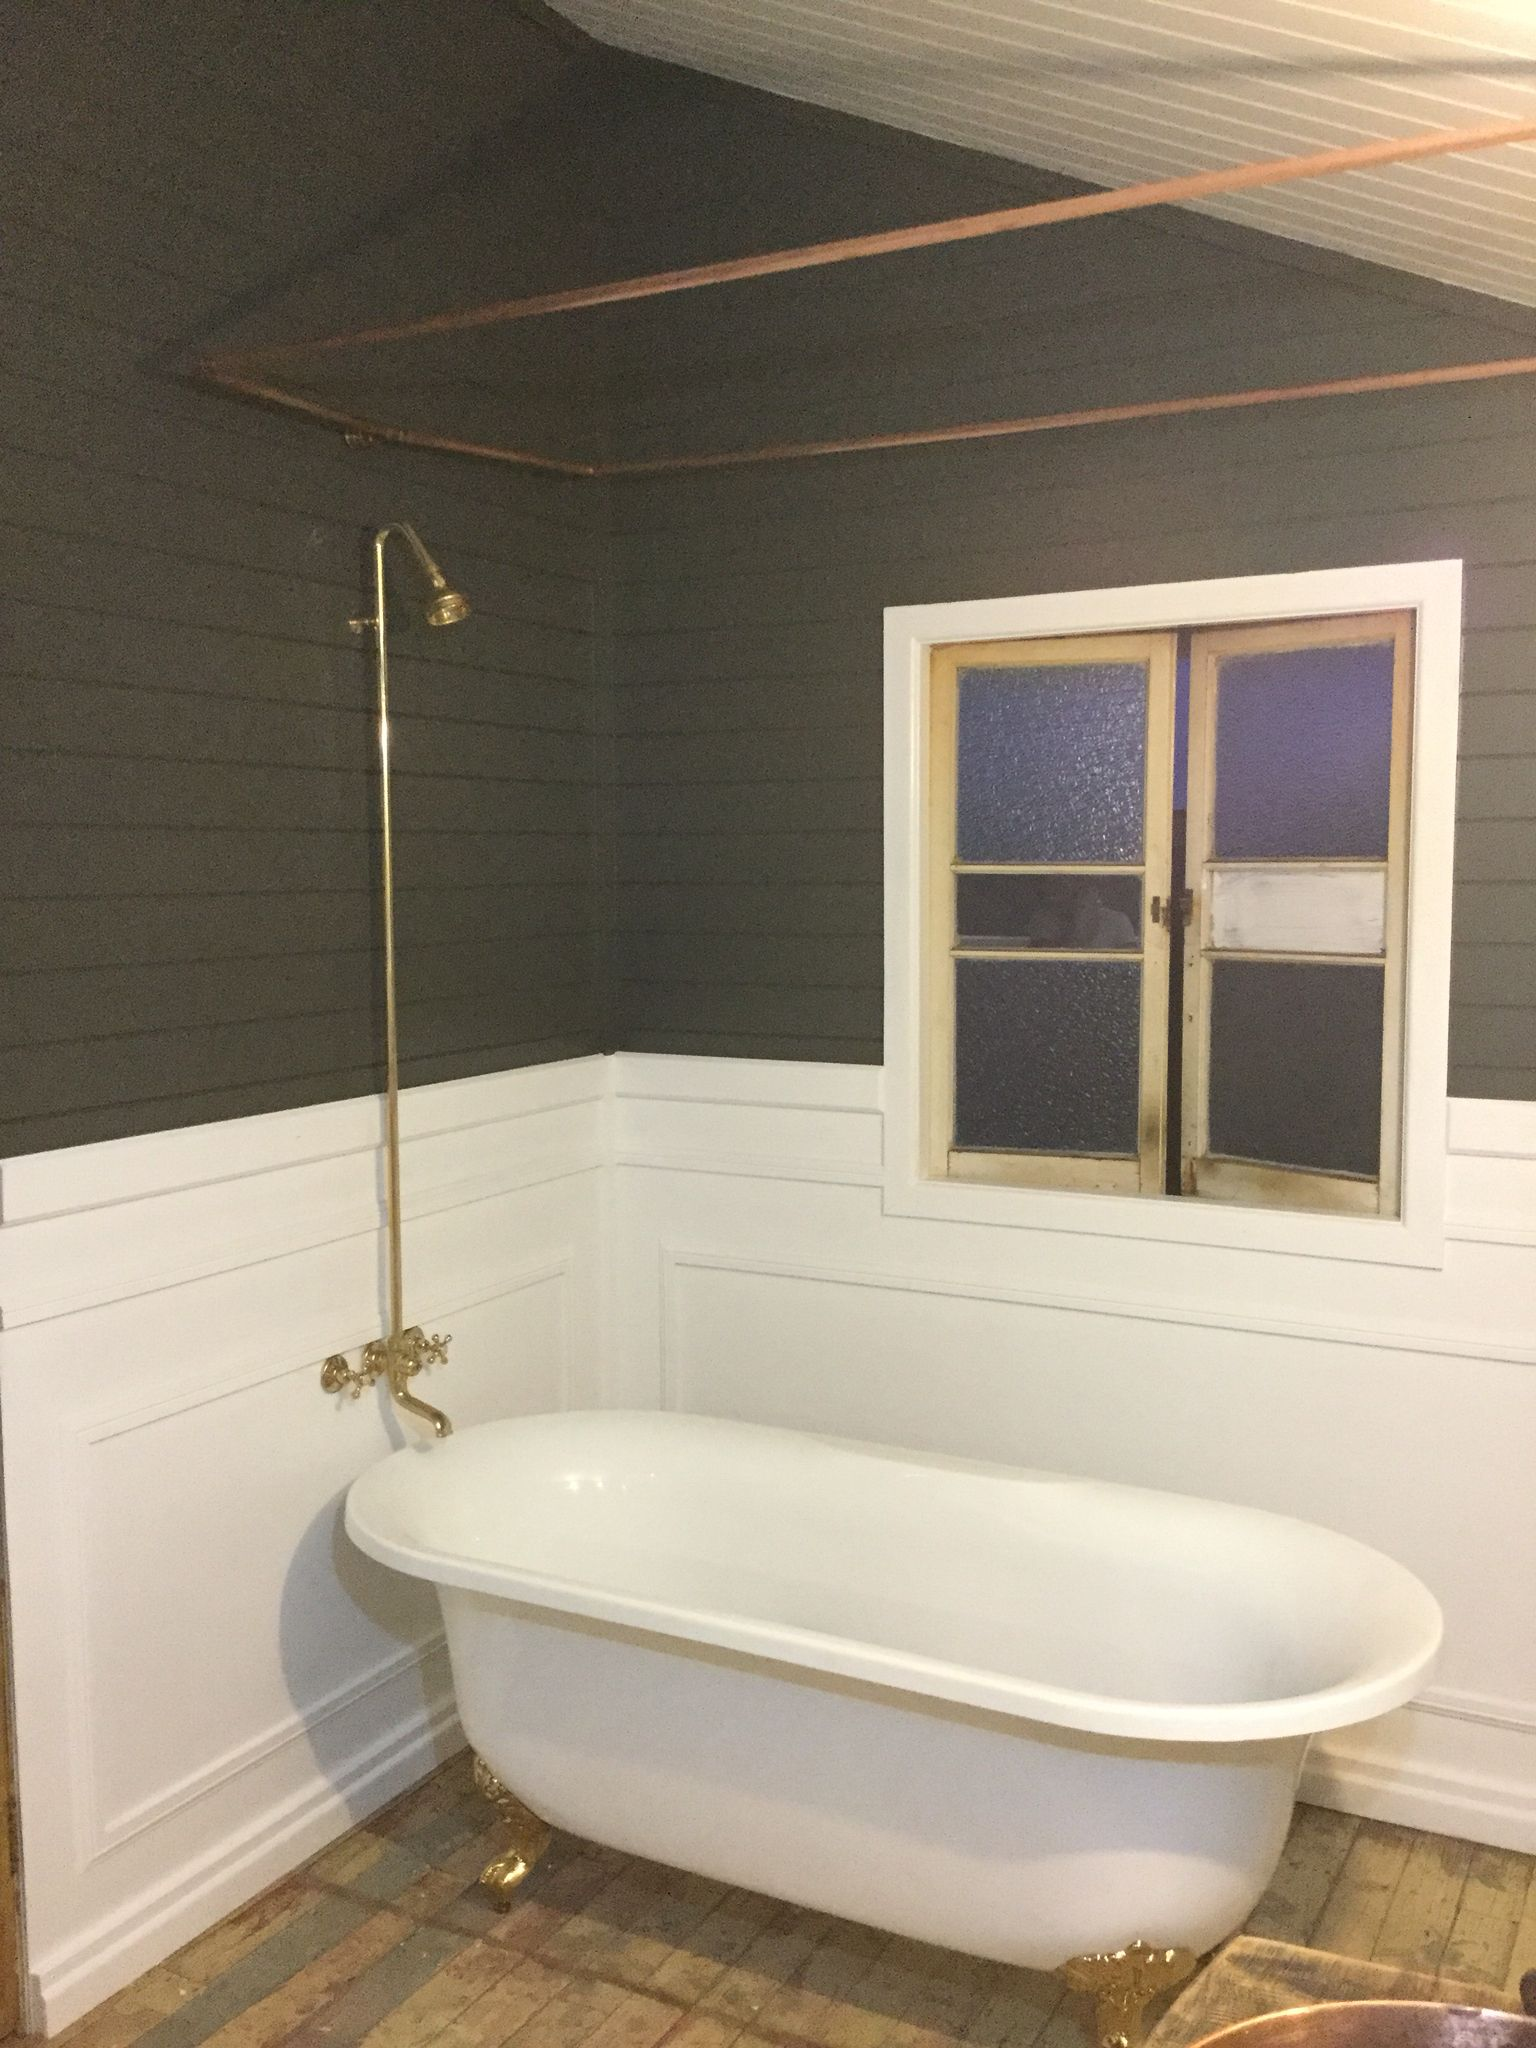 Copper Pipe Shower Curtain Rail Claw Foot Bath Hand Painted Original Floor Gold Plated Tap